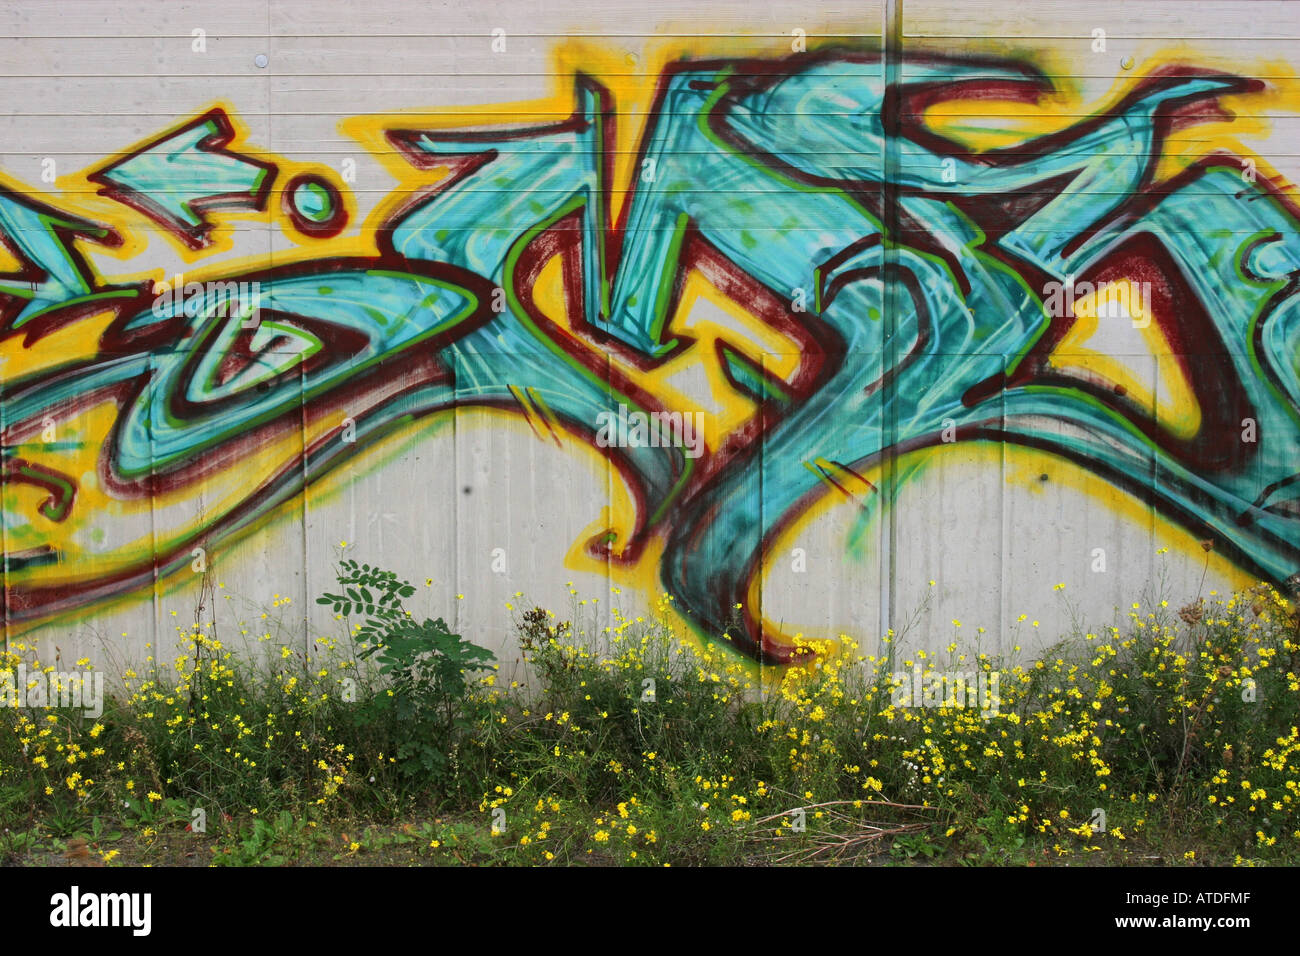 Concrete wall with colorfull graffitti - Stock Image